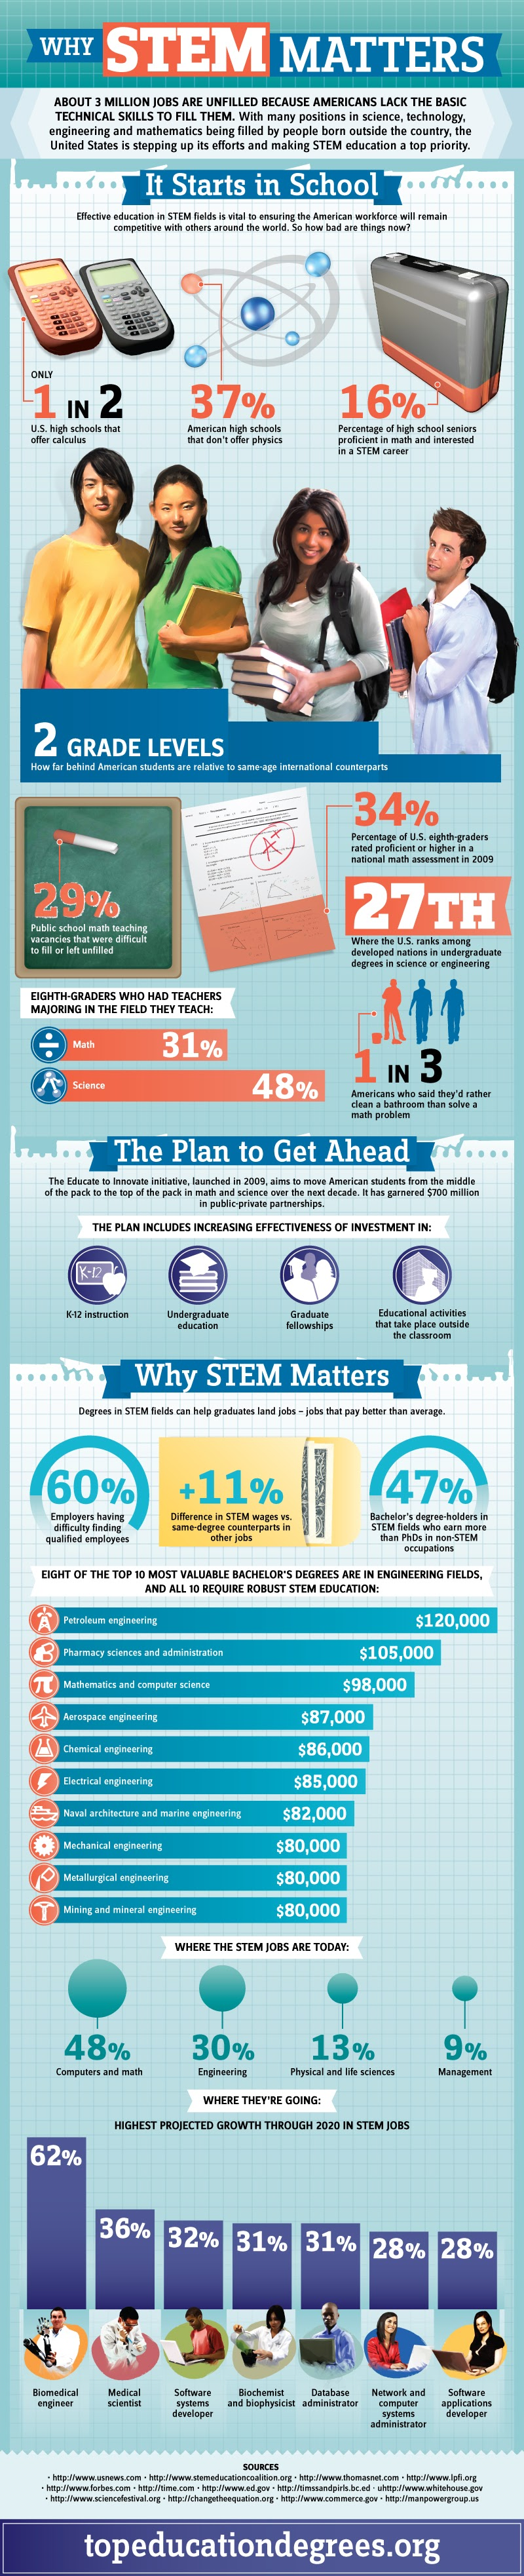 Why Stem Matters #Infographic